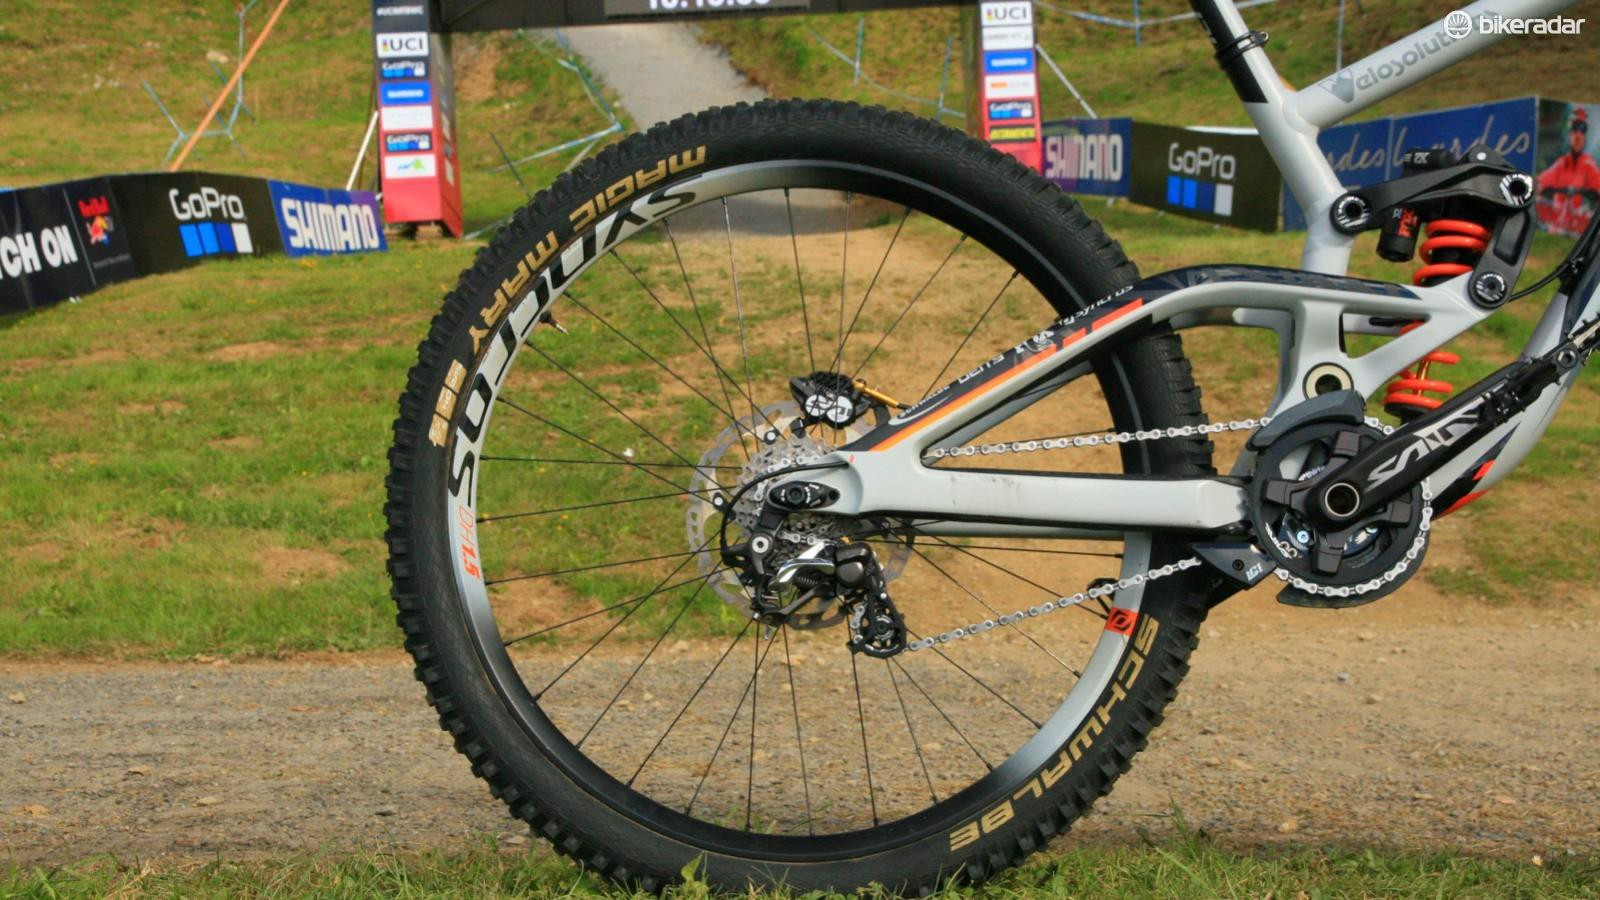 The Scott Gambler's high main pivot results in very high levels of anti-squat… and pedal kickback